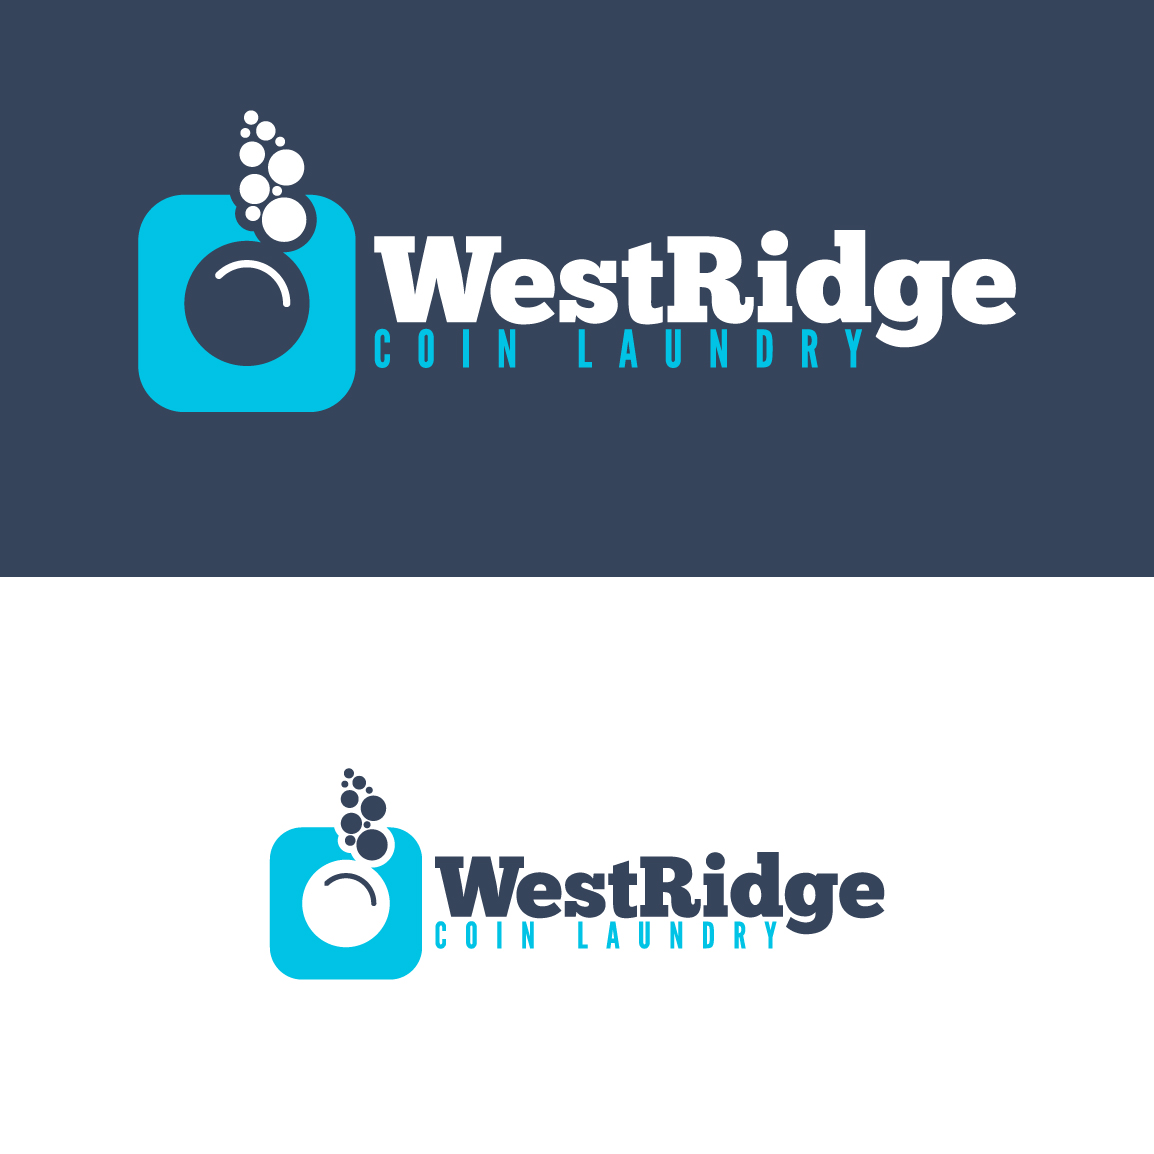 bold playful town logo design for west ridge coin laundry by fanol ademi design 11537464 west ridge coin laundry by fanol ademi